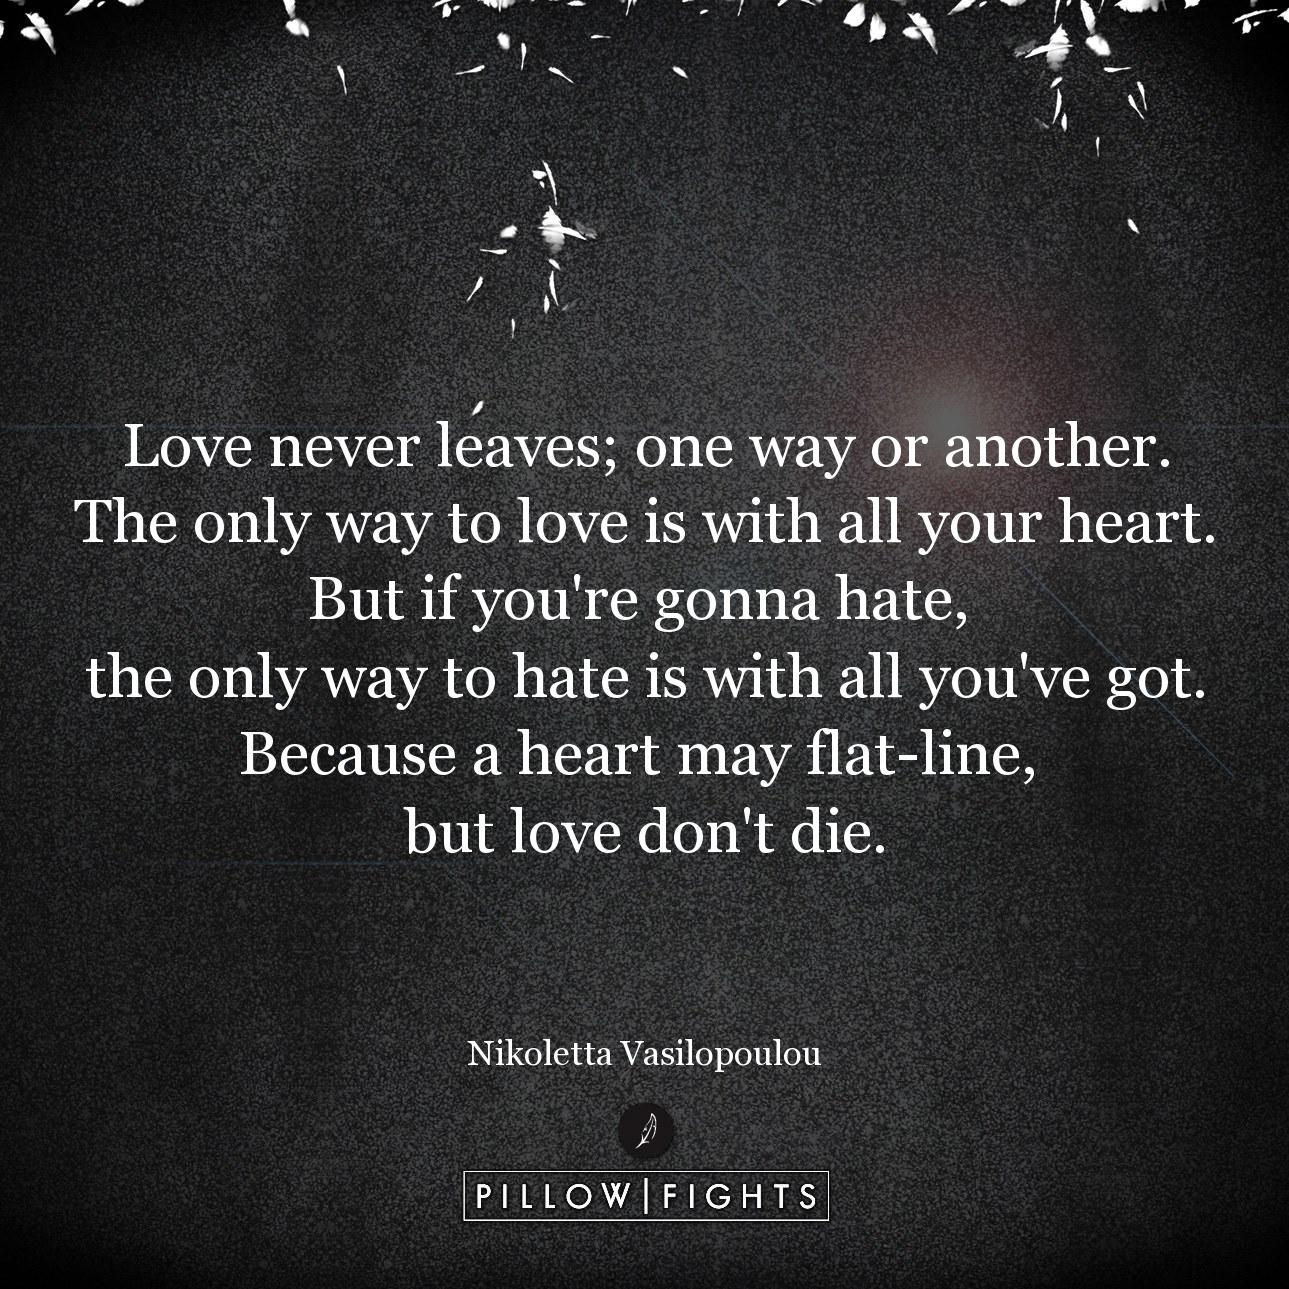 one way to love